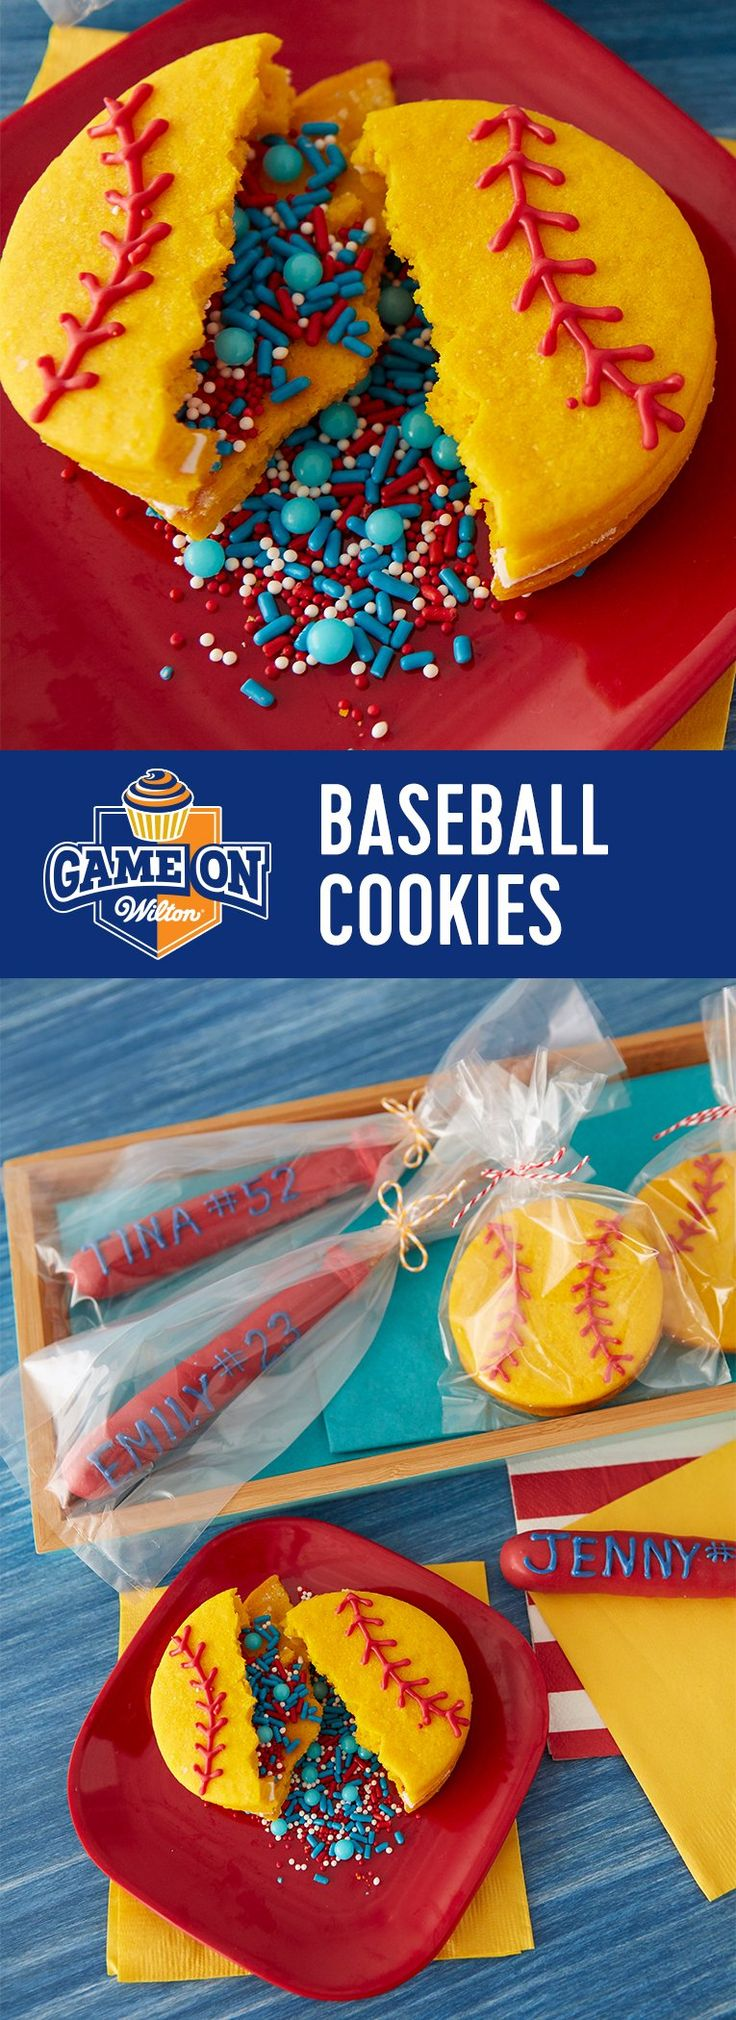 Pinata Baseball Cookies - Playoffs are around the corner! Here's how to extend the winning streak...decorate tasty pretzel bats and hide sprinkles inside ball cookies for the next playoff party!